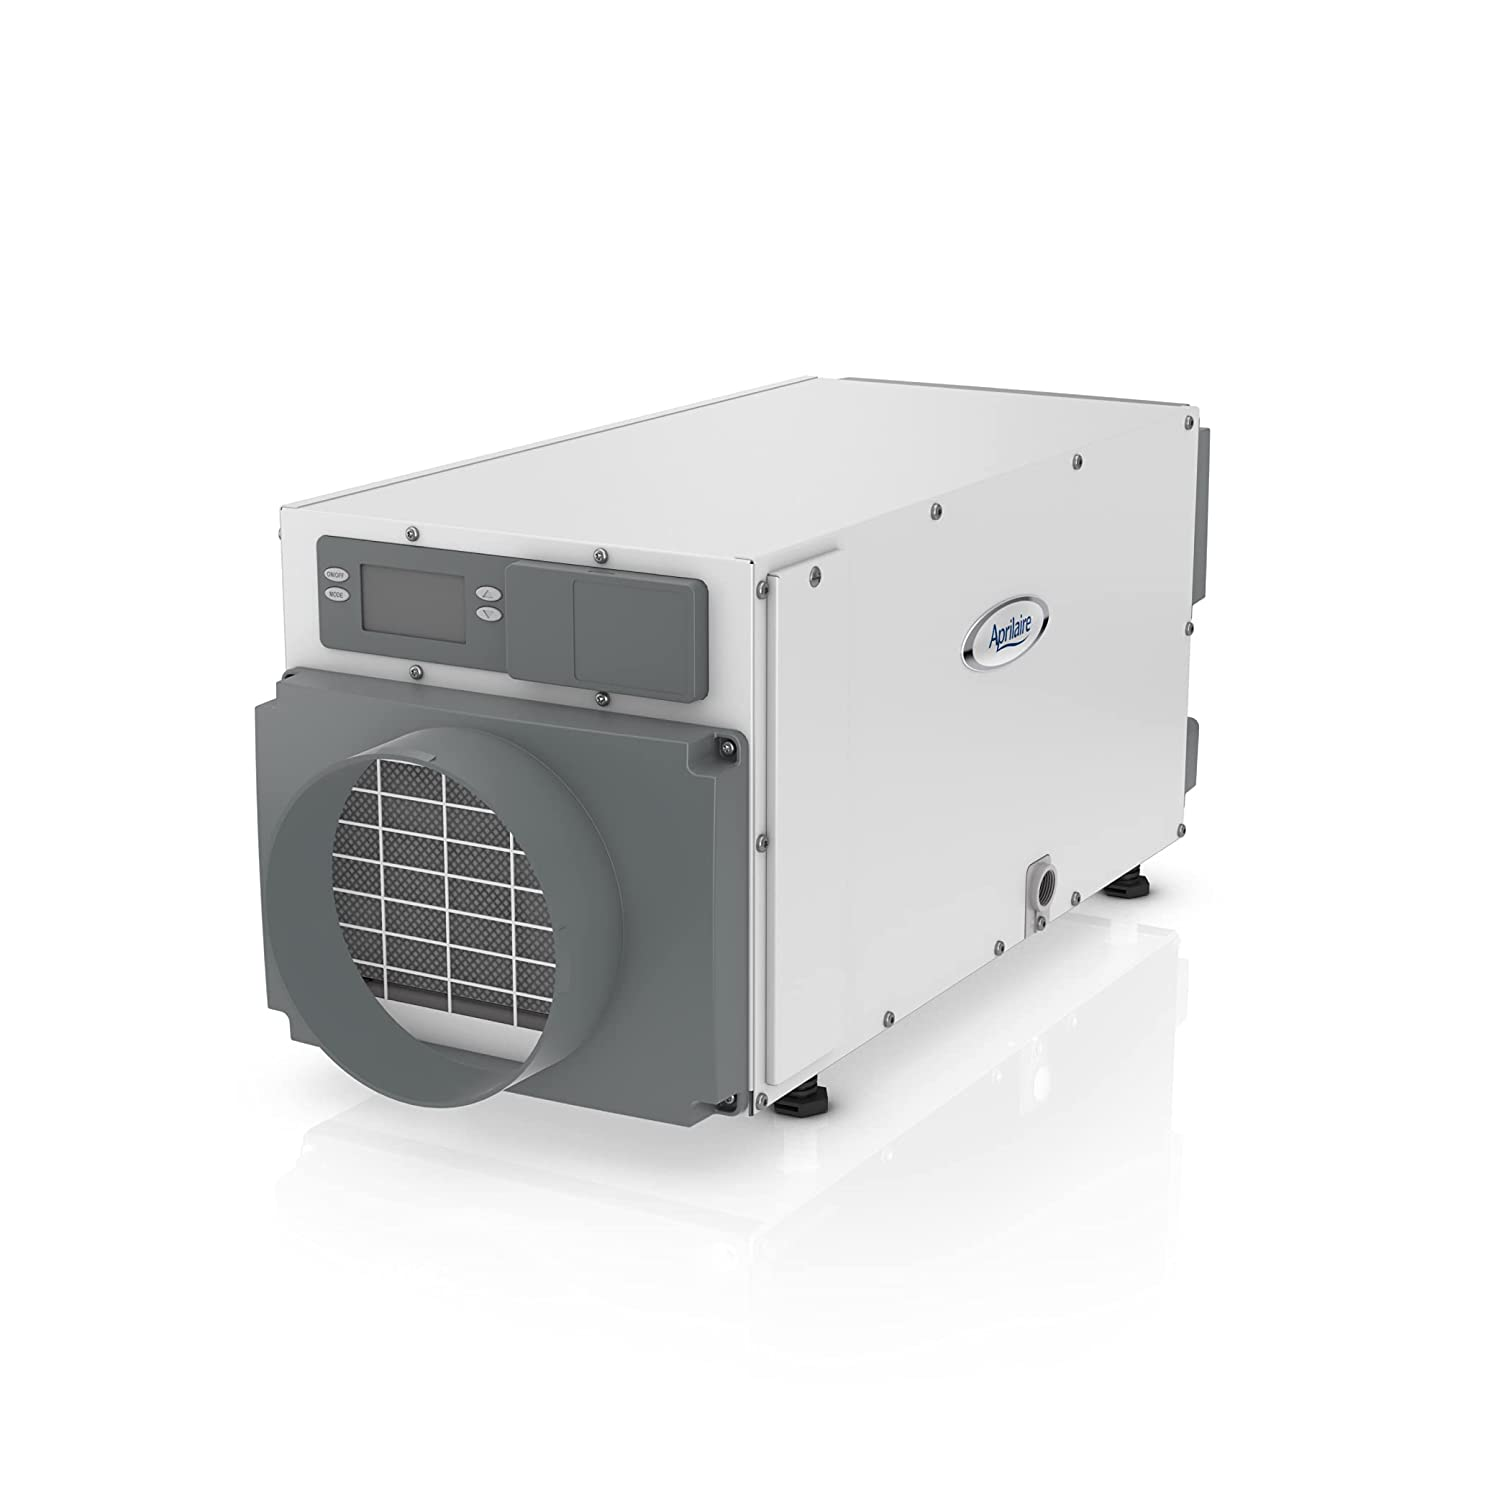 Aprilaire E70 Pro 70 Pint Dehumidifier Crawl Spaces Max 86% OFF for High quality new Basemen